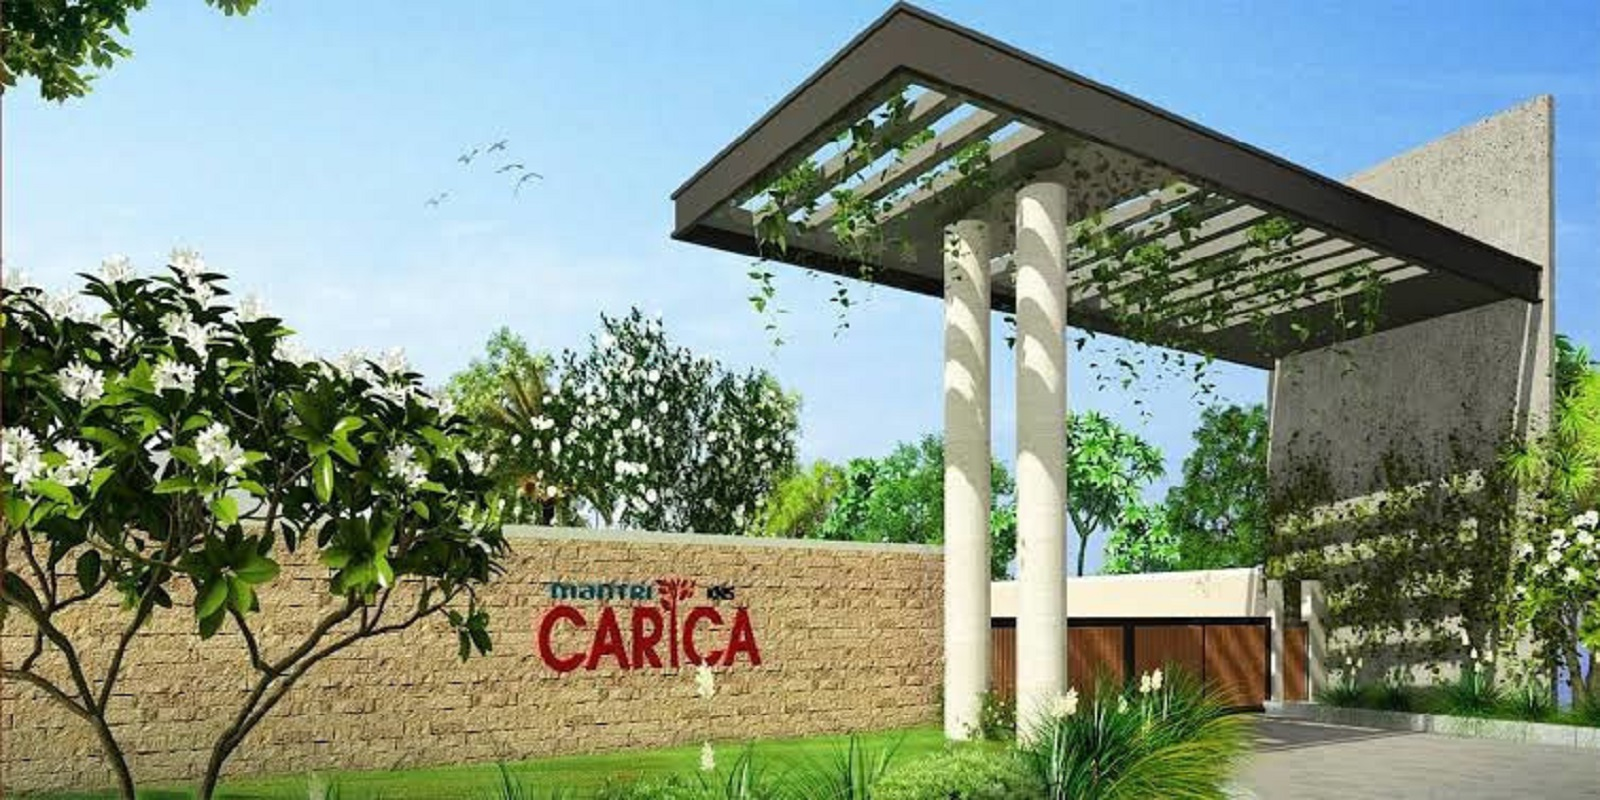 mantri kns carica project project large image1